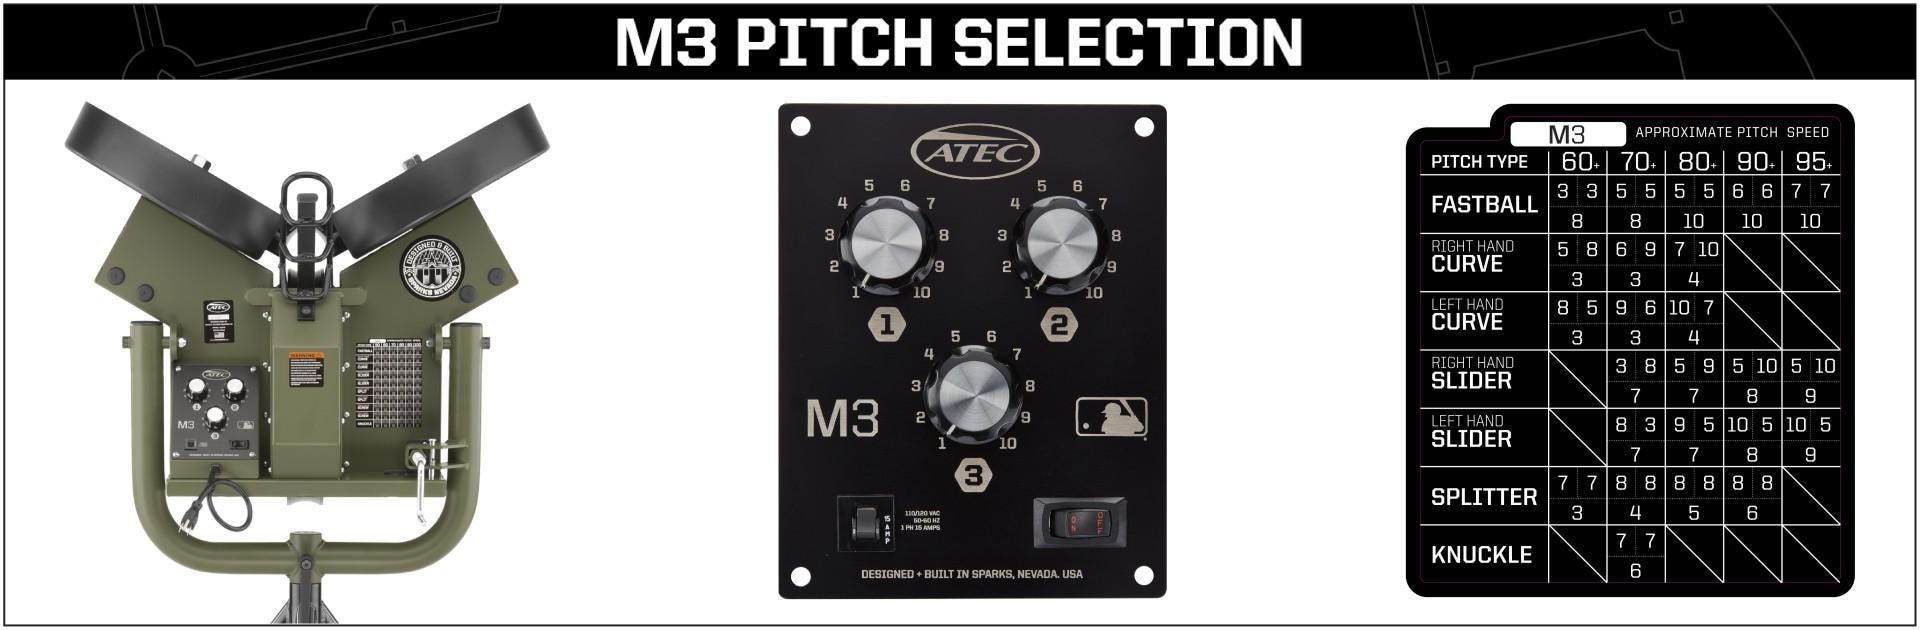 ATEC M3 Pitch Selection